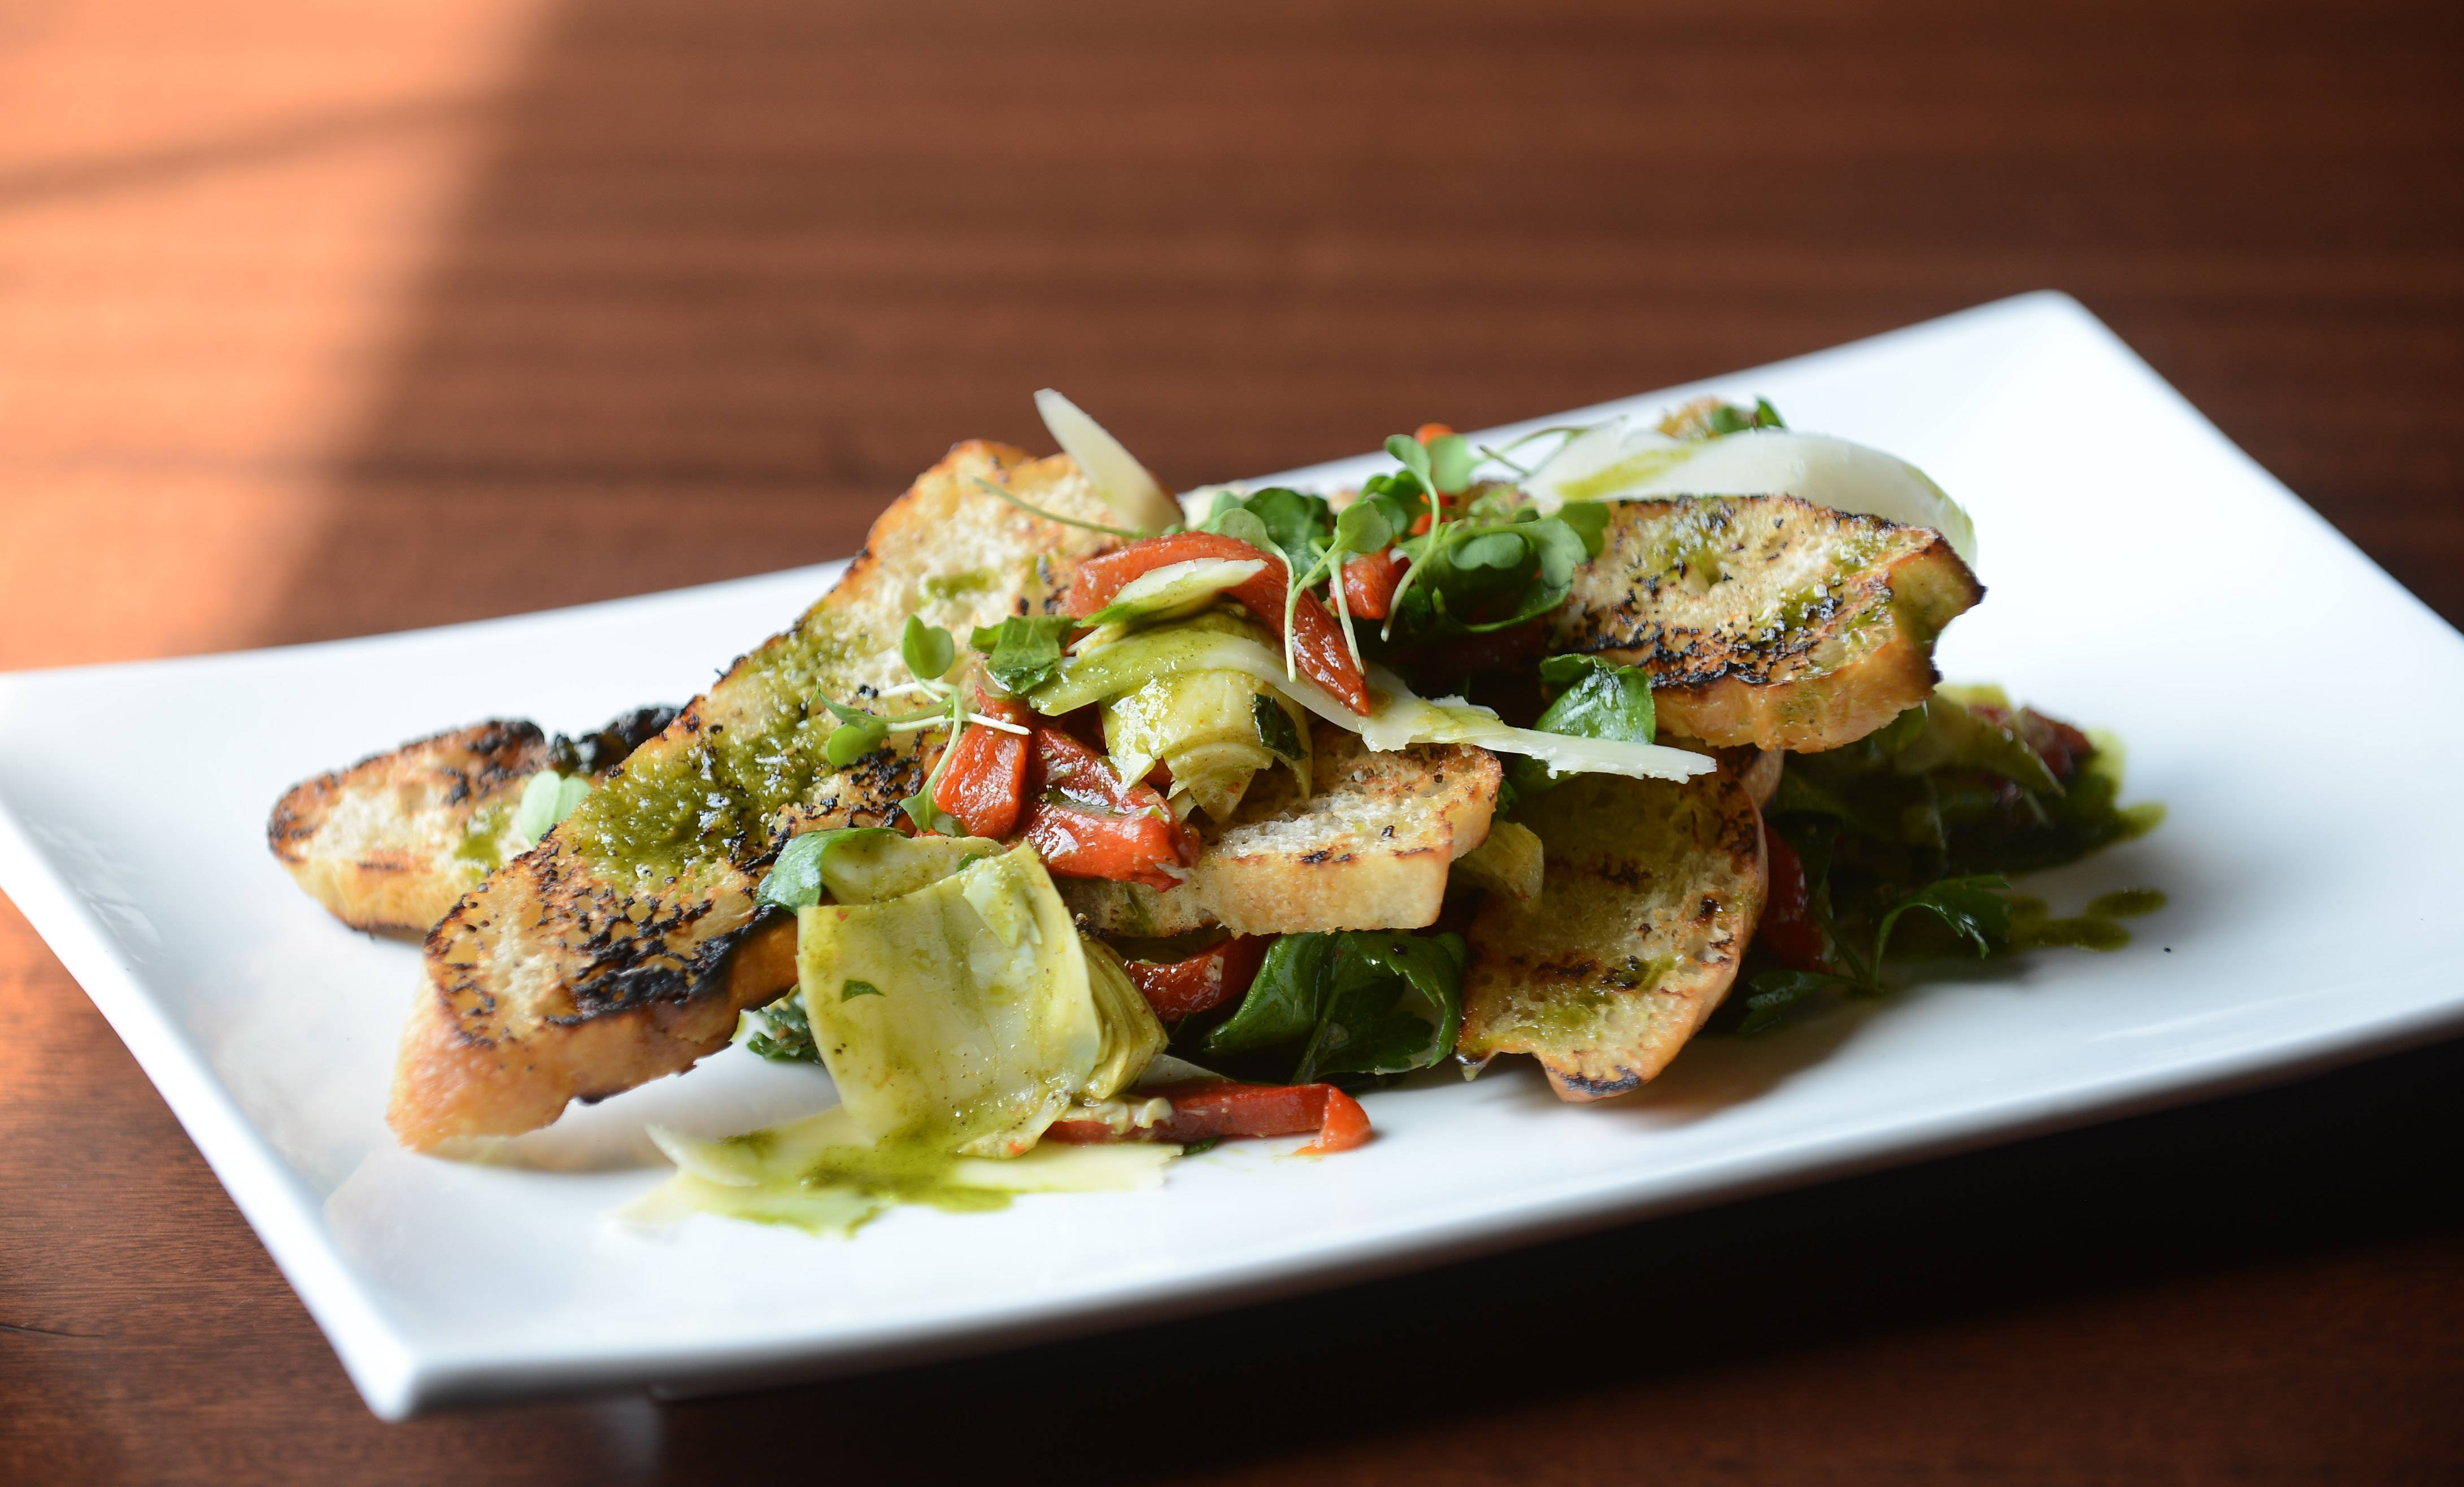 Red Heart Salad, named by Chef Chris Ayukawa's pastry chef wife, features marinated artichokes and peppers.